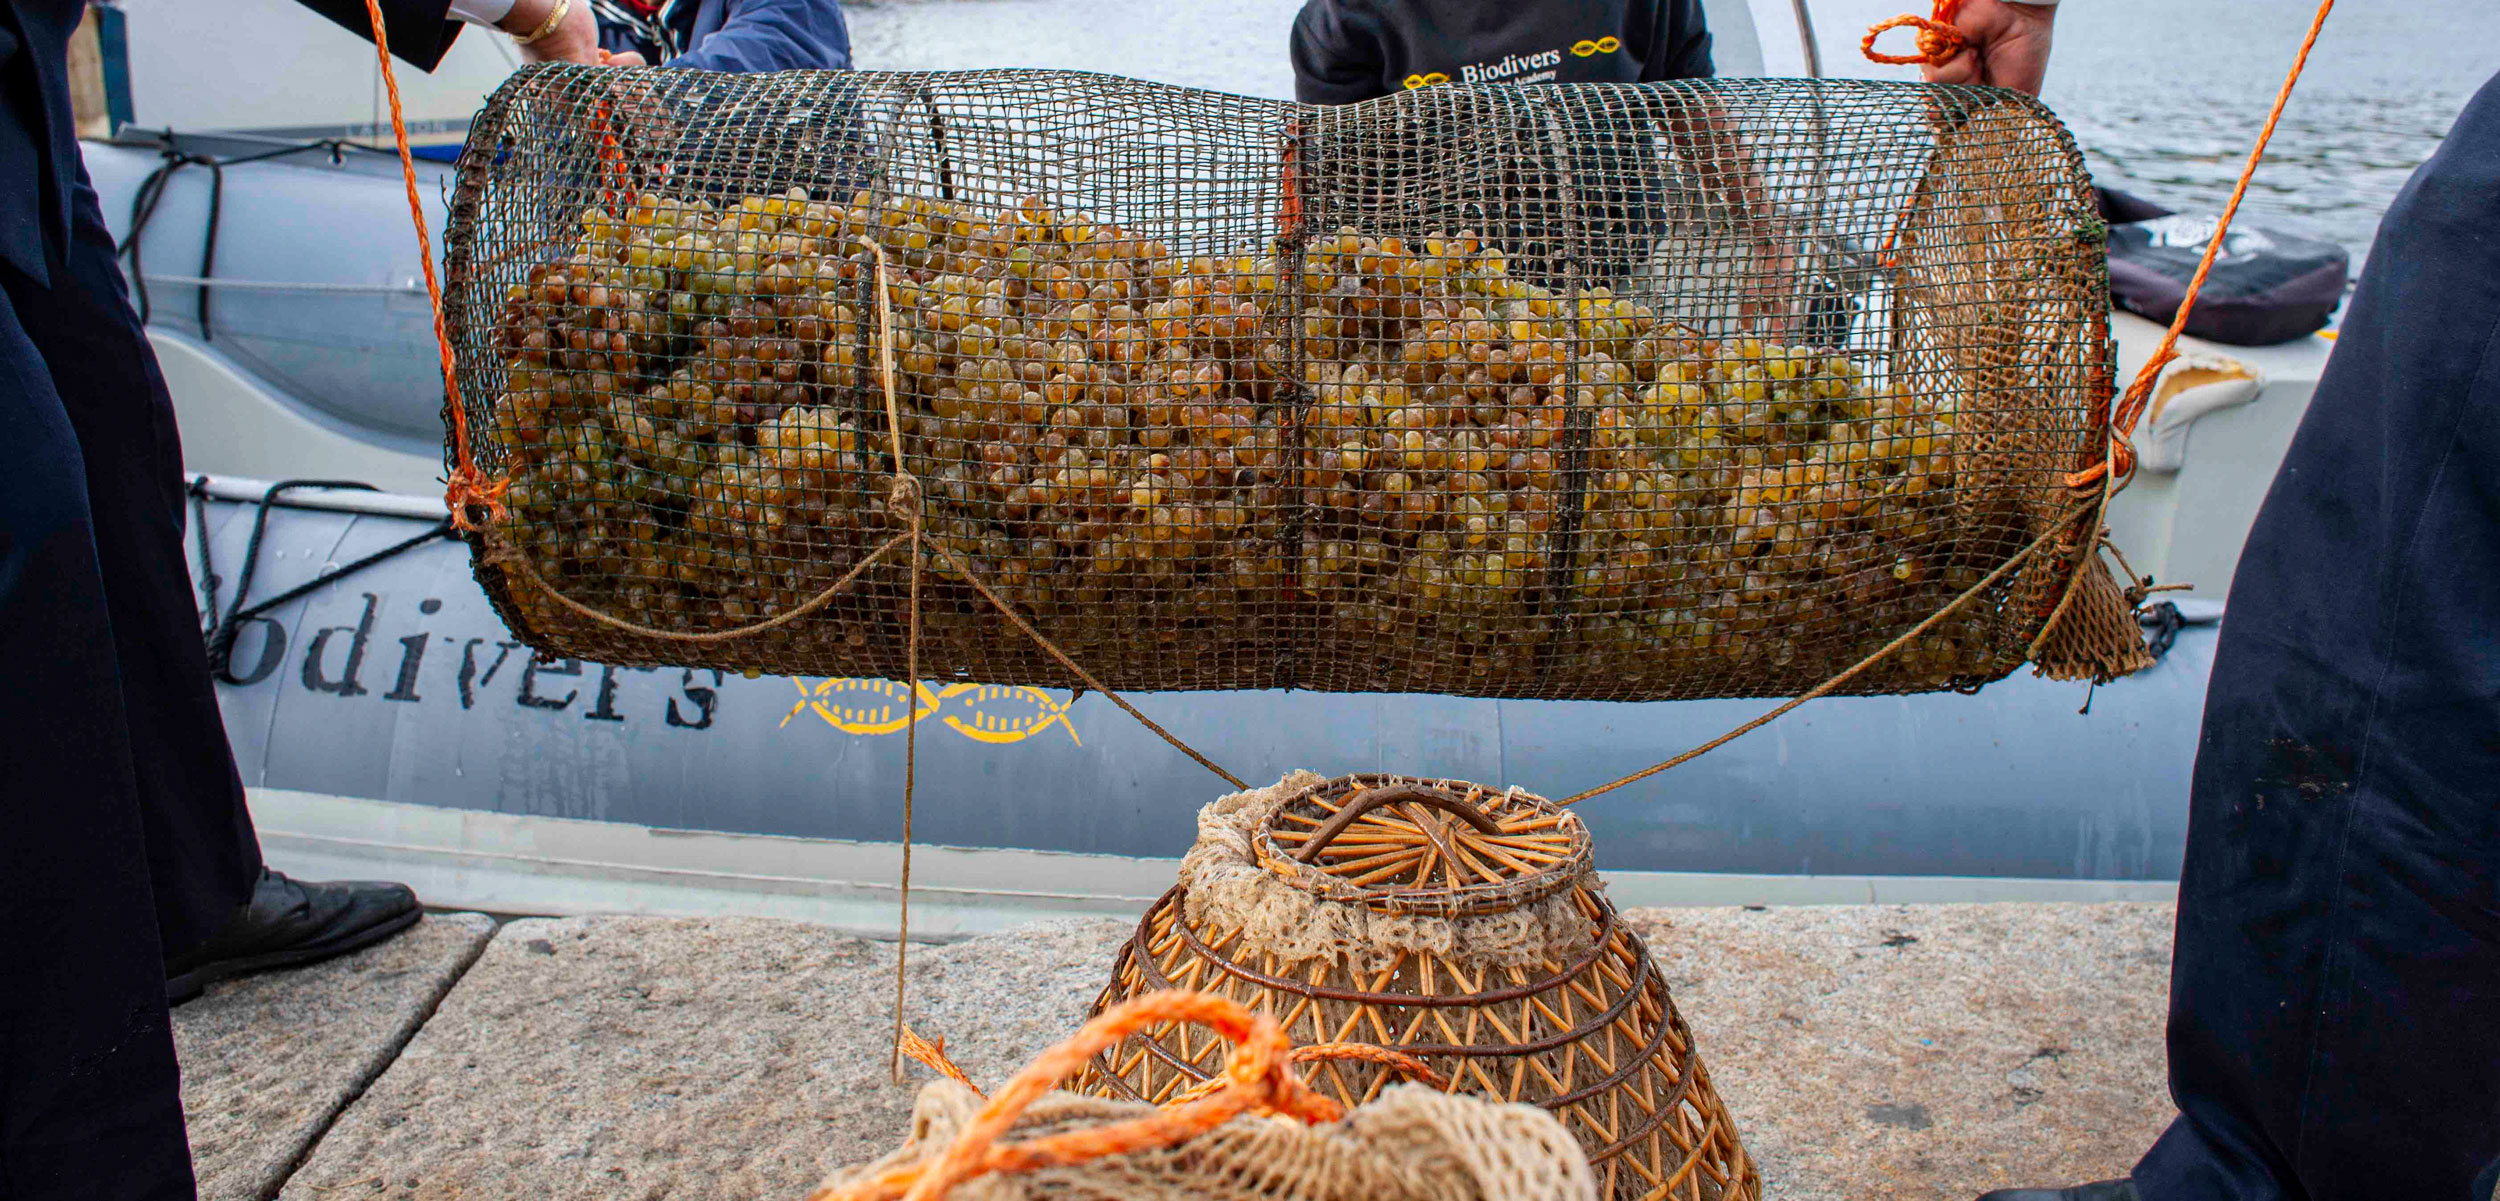 basket of grapes at dock